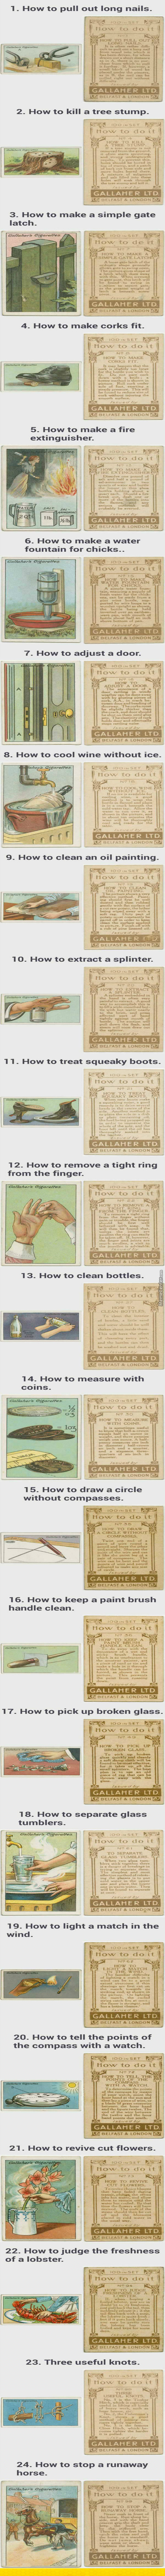 How To And Other Interesting Things From The Probably 1800's Probably. I Don't Know.